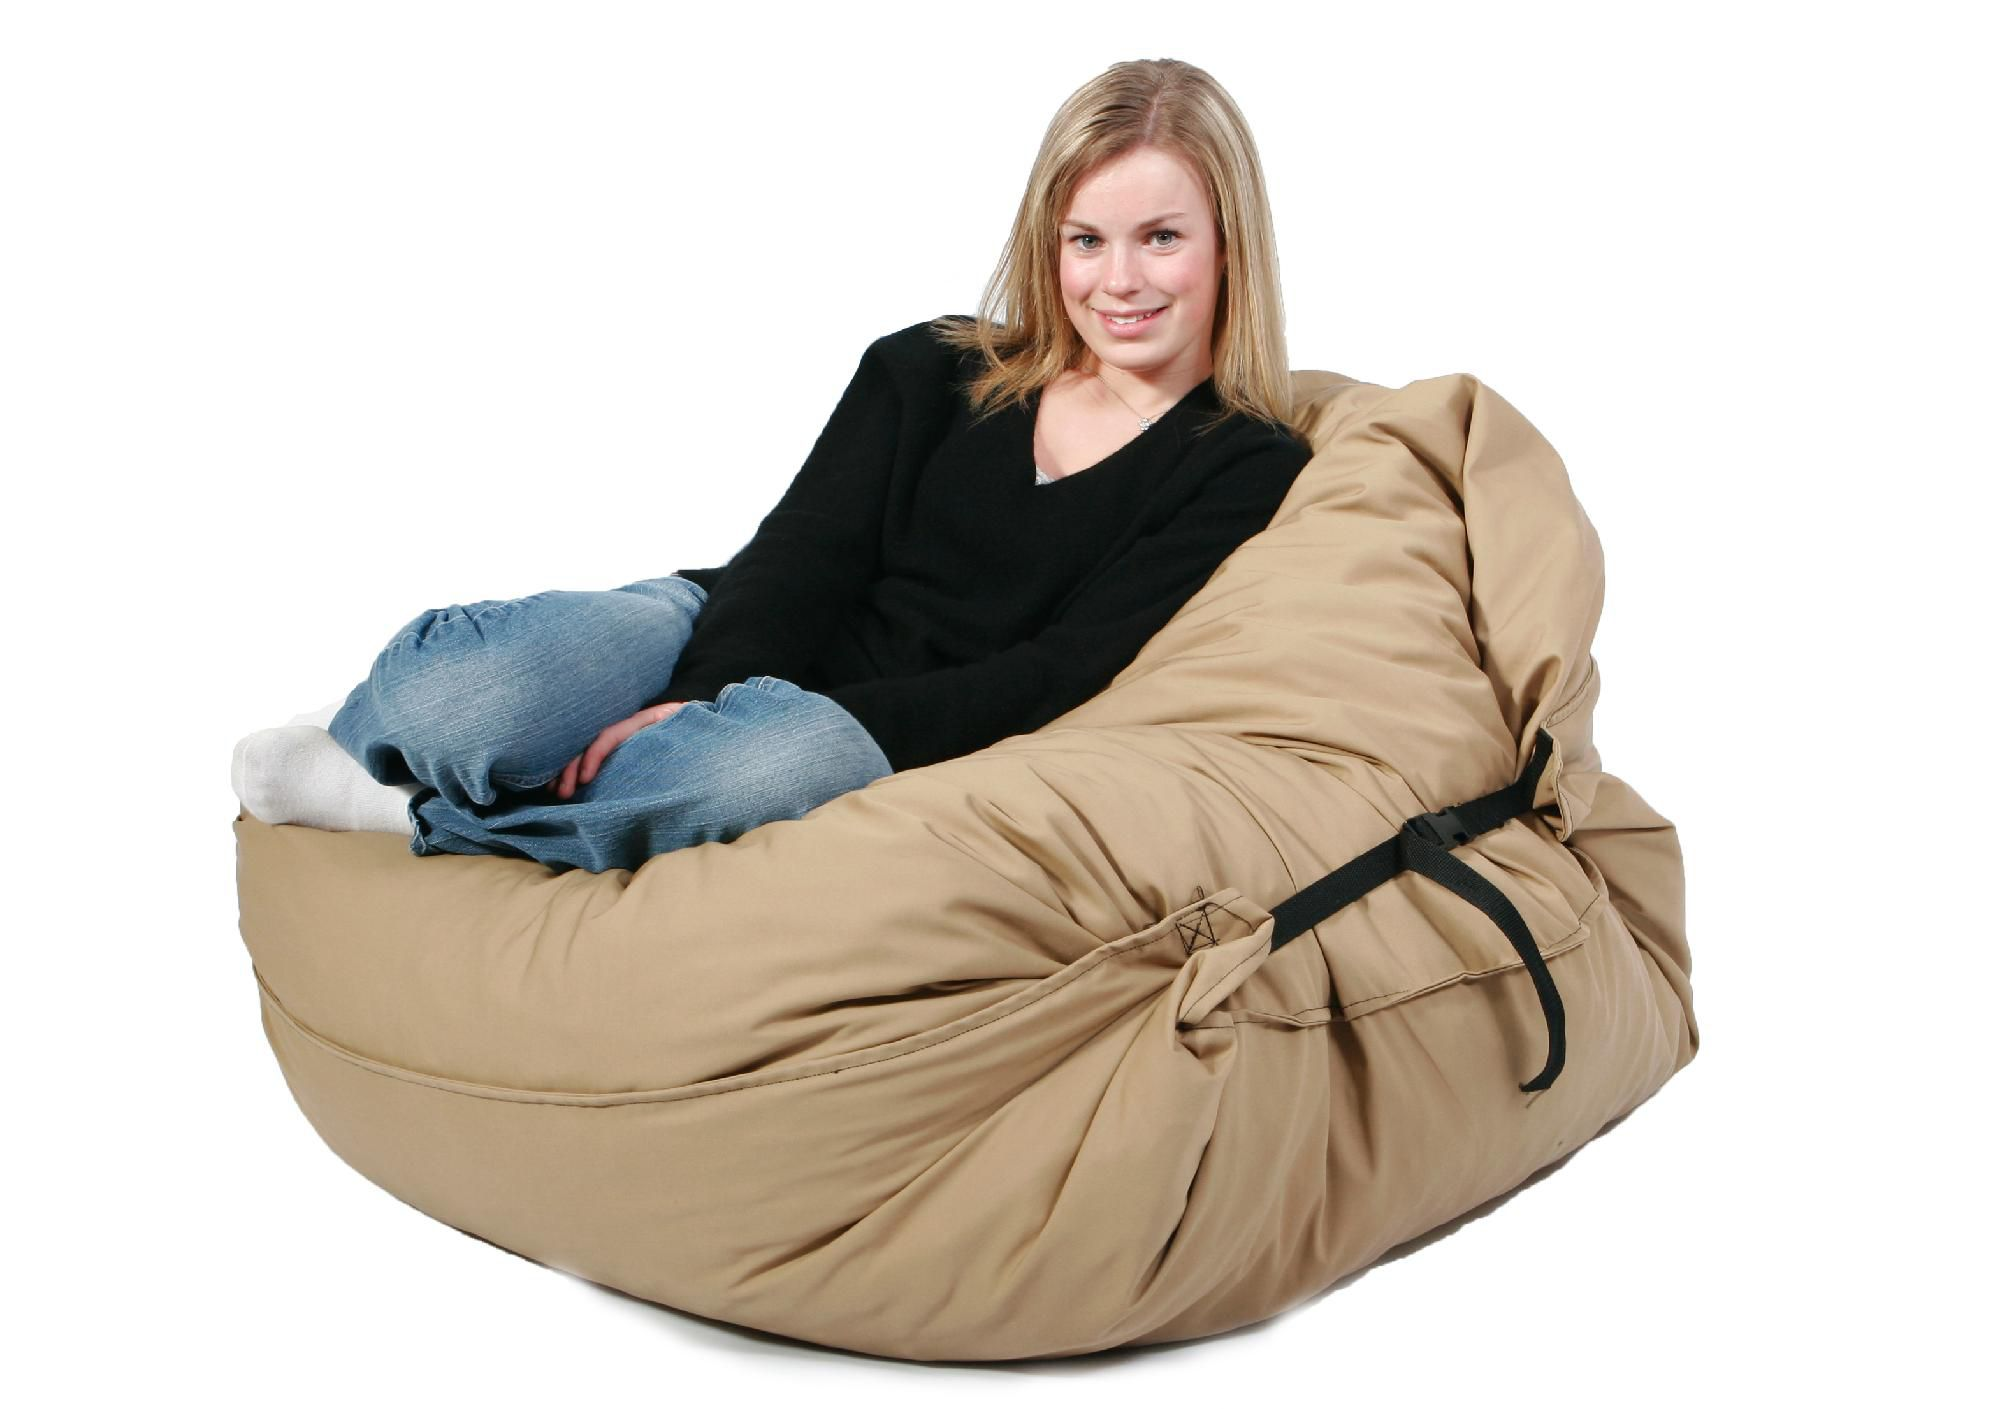 xxl fuf chair brown leather and ottoman comfort research 4 39 large bean bag in black onyx